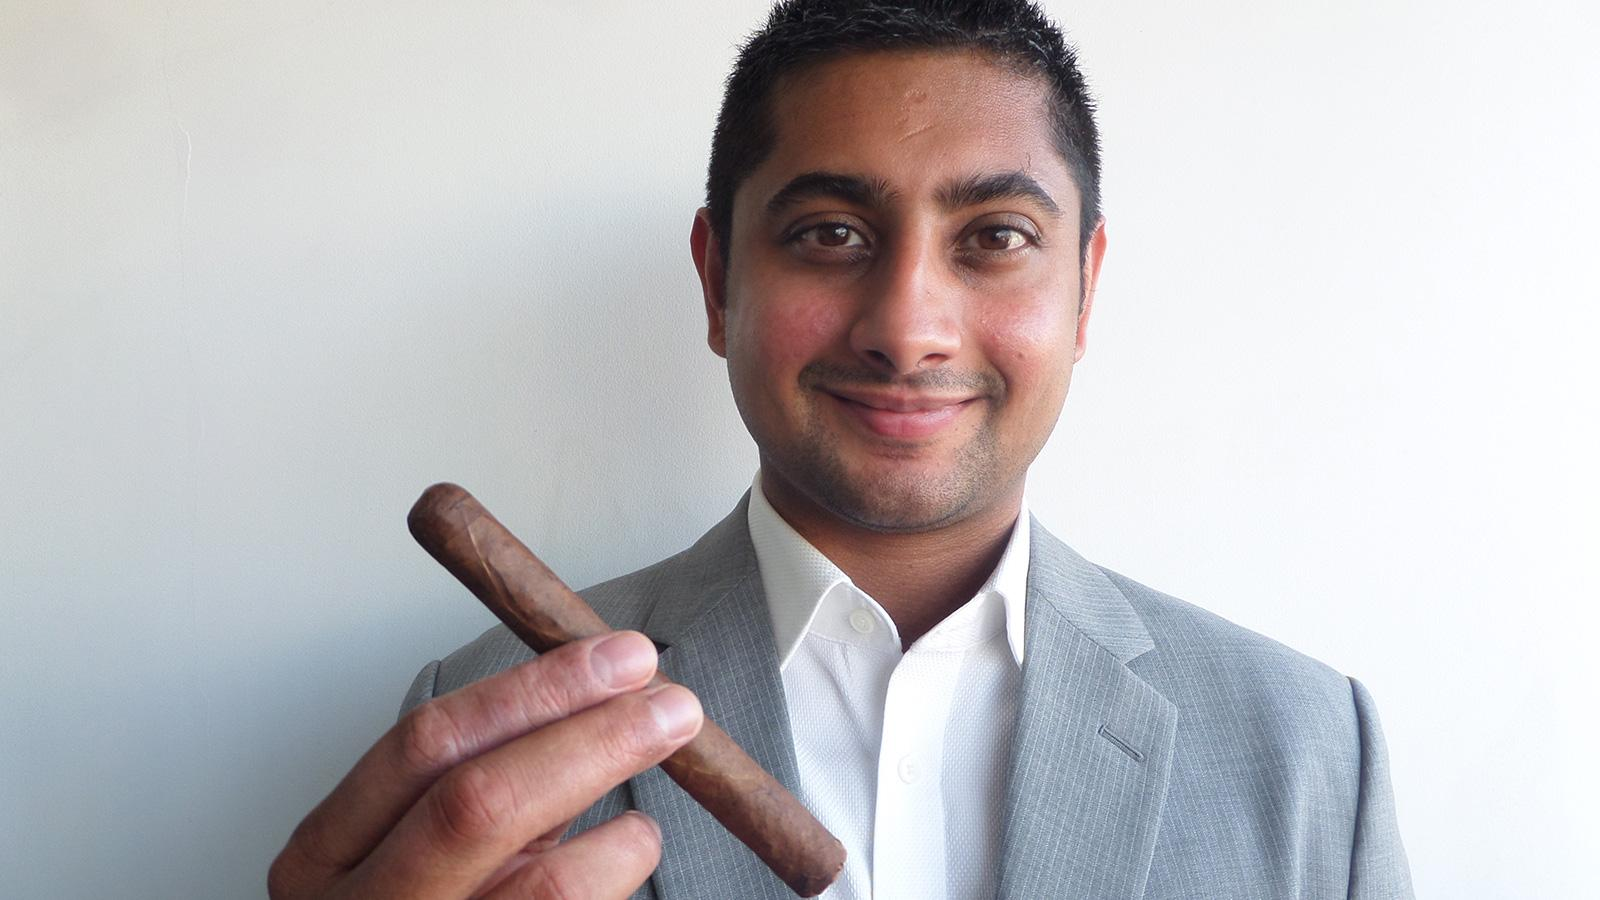 Akhil Kapacee of Regius Cigars discusses his breaking into the business and entering the U.S. market.